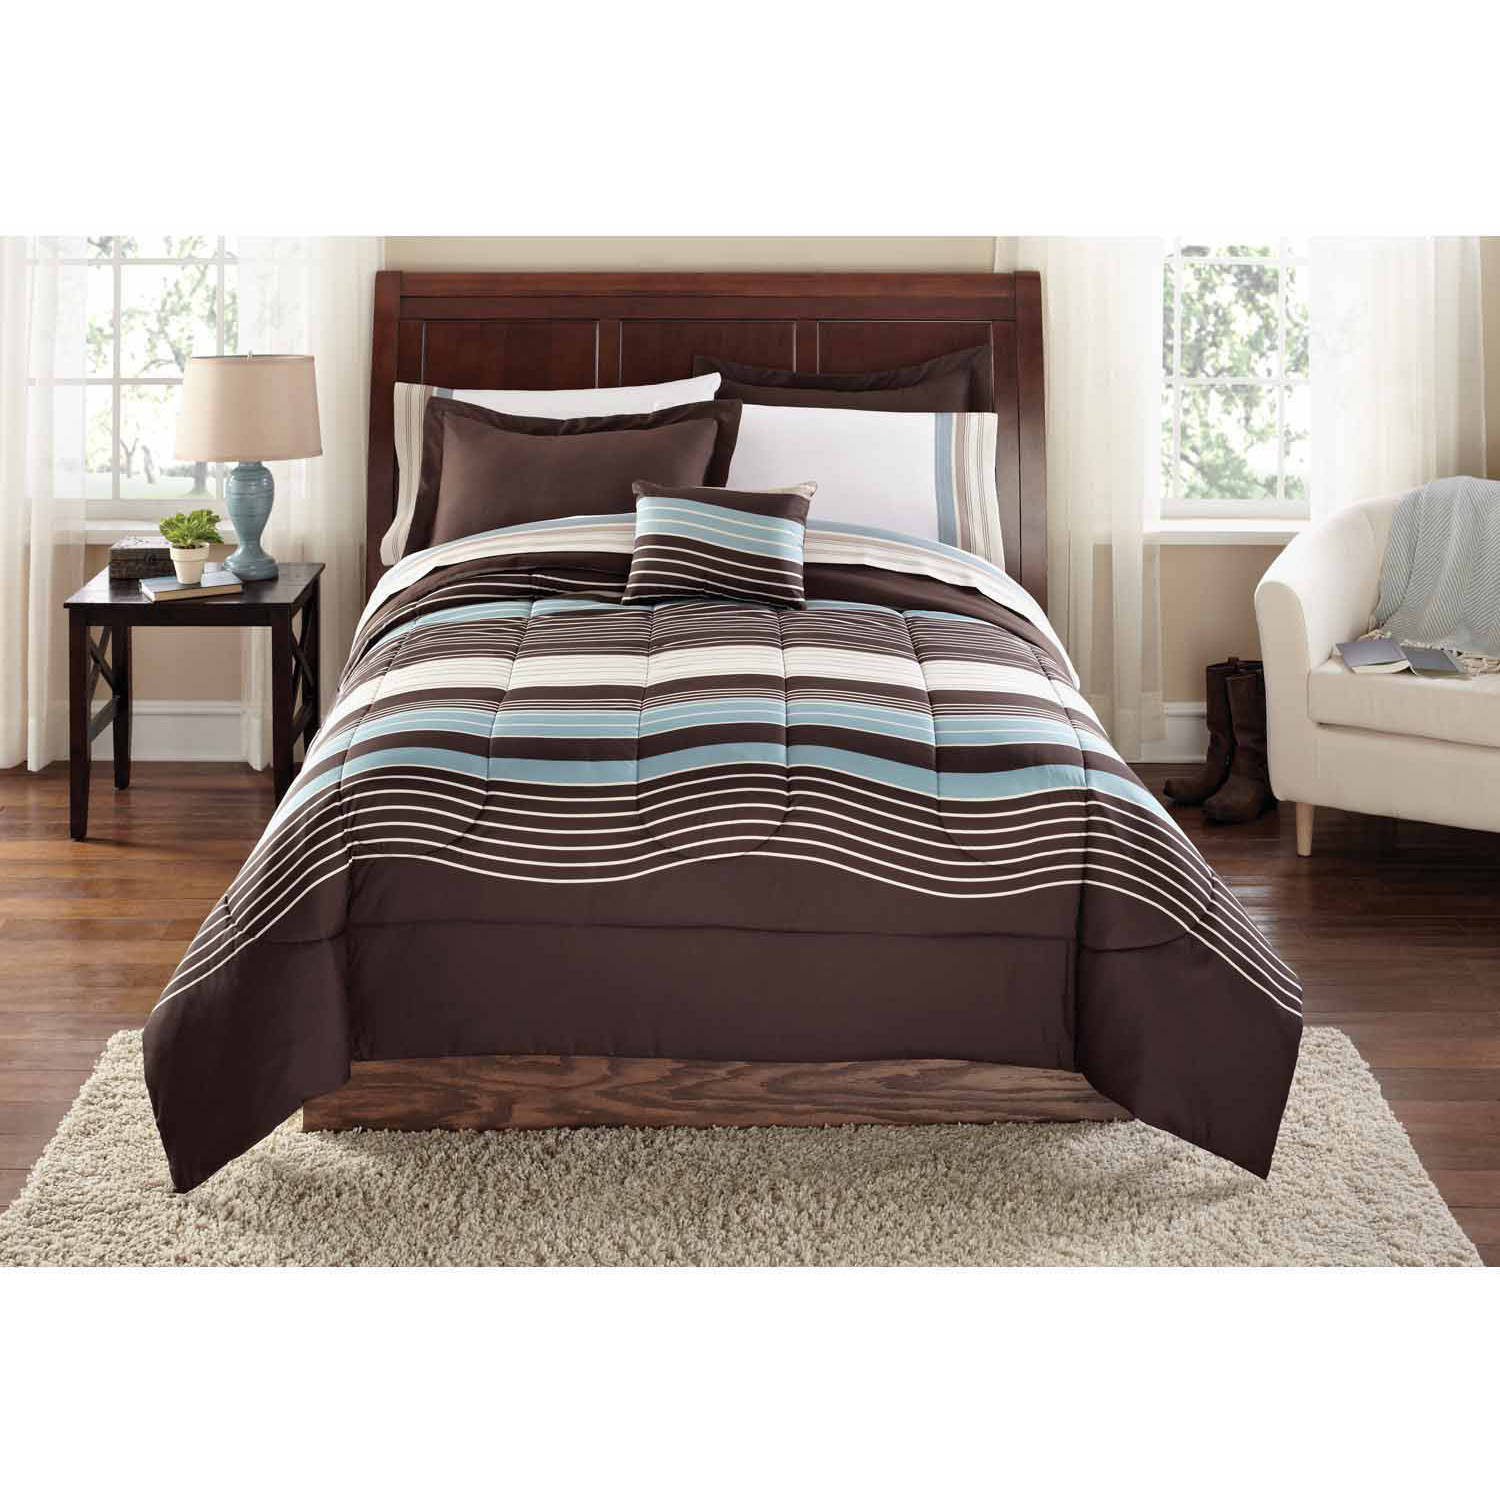 a queen mainstays ip in com bed set bedding coordinating seashell walmart bag